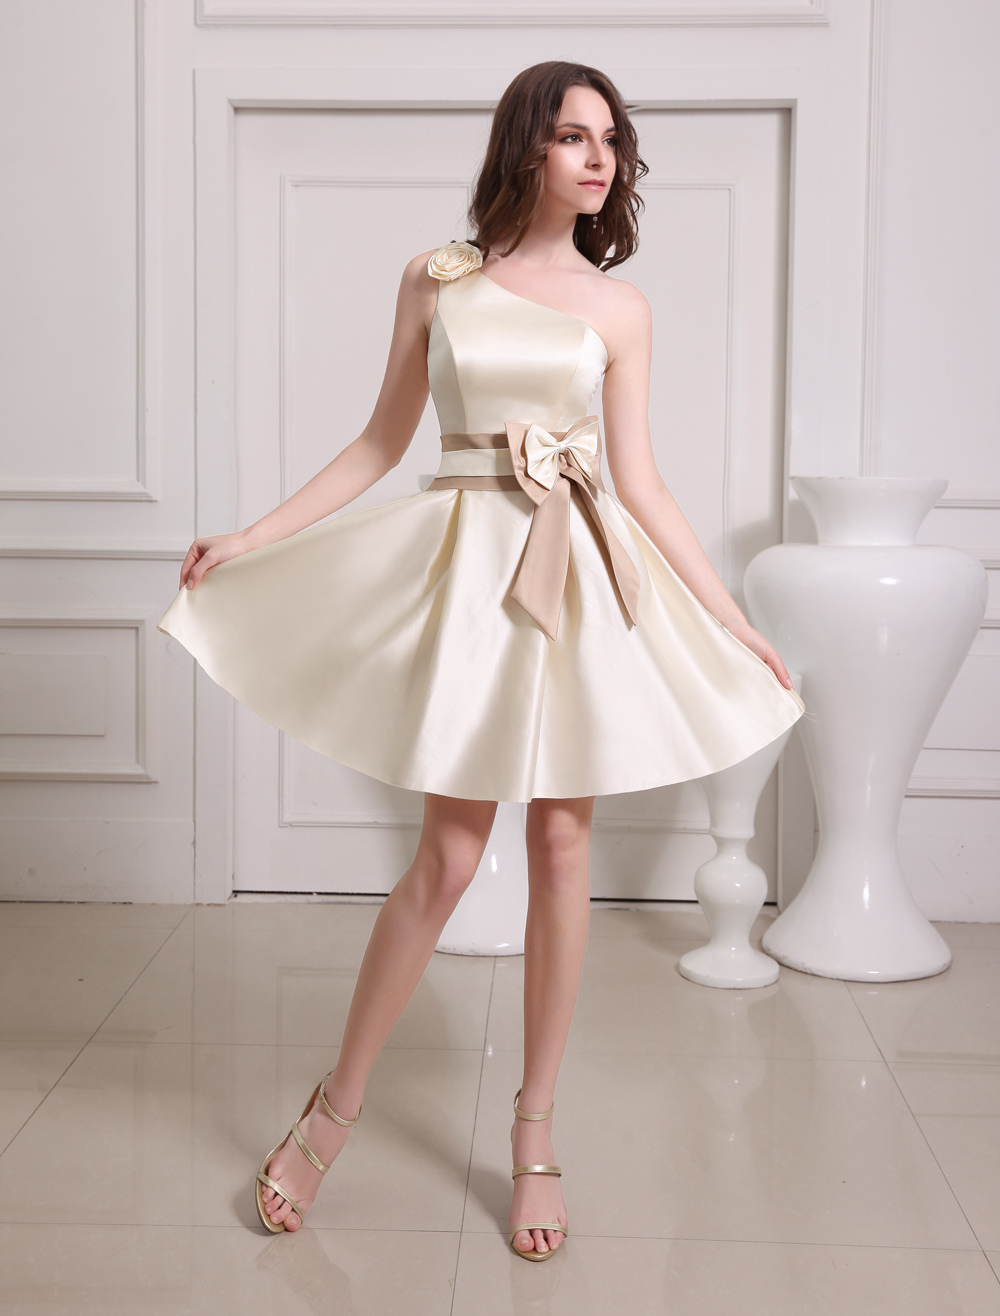 4907b4b5081 ... Short Gold Champagne One-Shoulder Satin Bridesmaid Dress-No.10. 12.  35%OFF. Color  AddThis Sharing Buttons